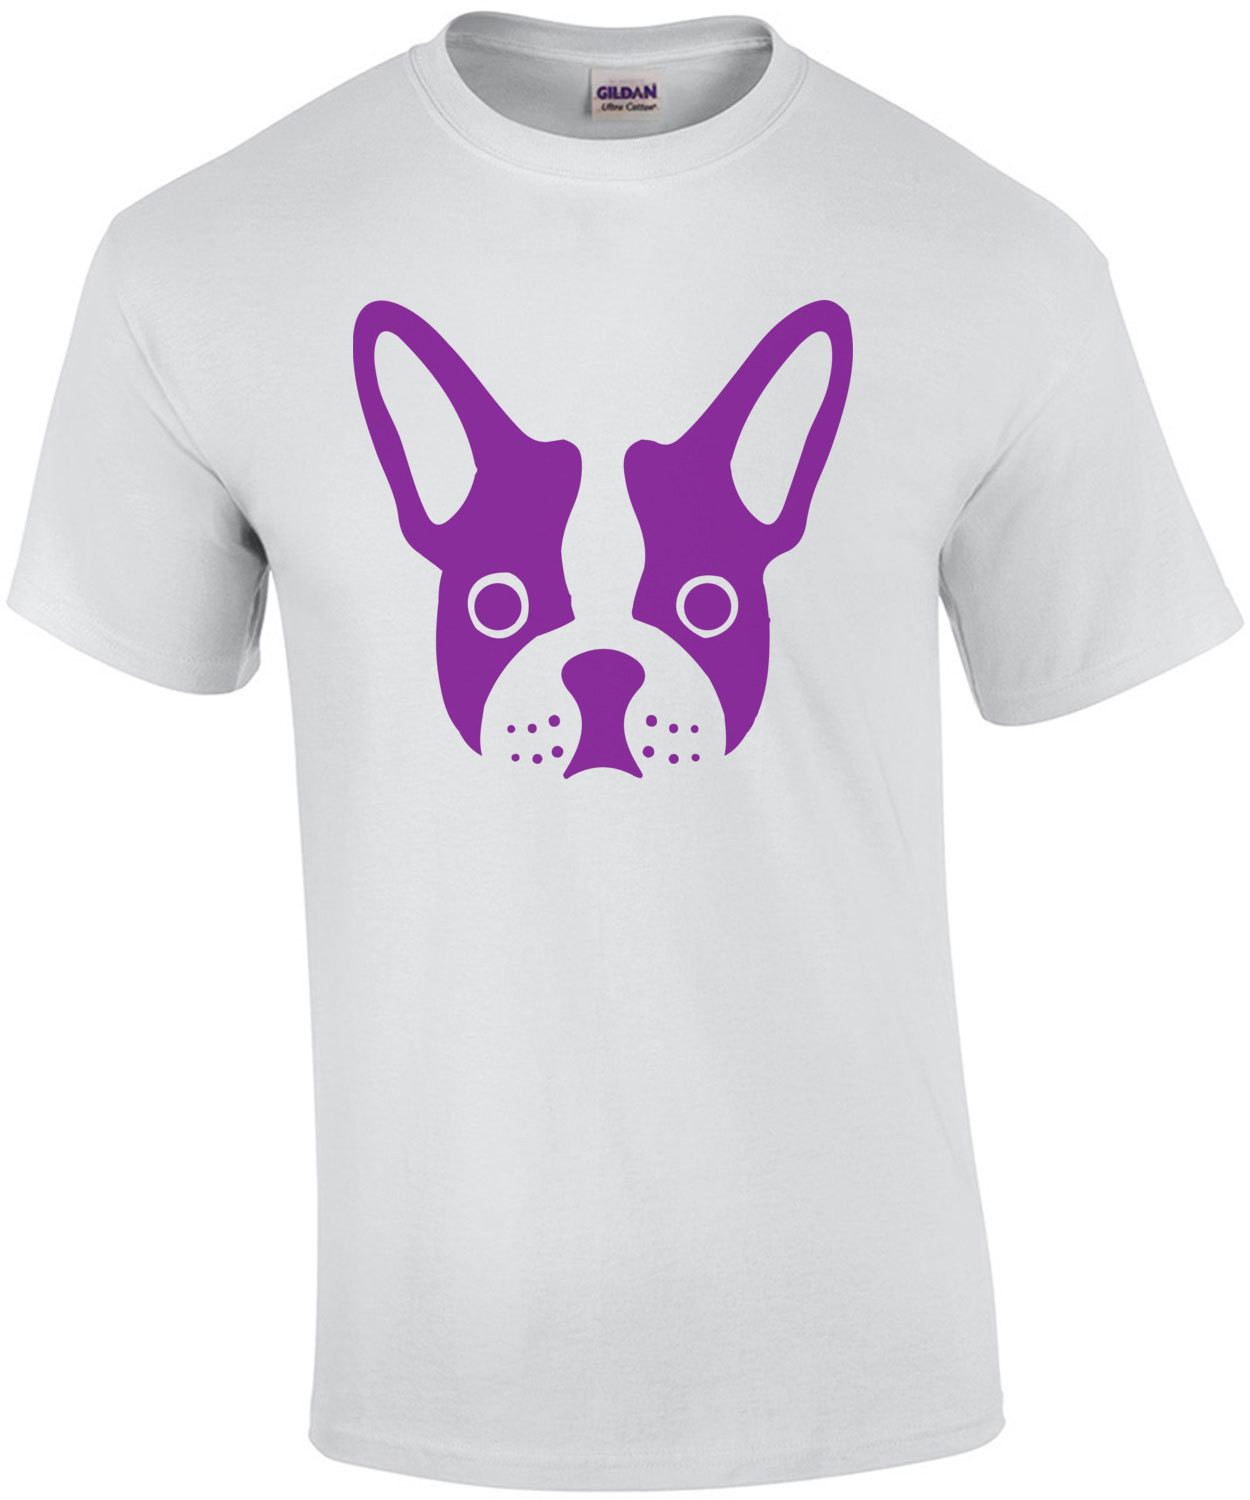 Head of a frenchie - Frenchie / French Bulldog t-shirt